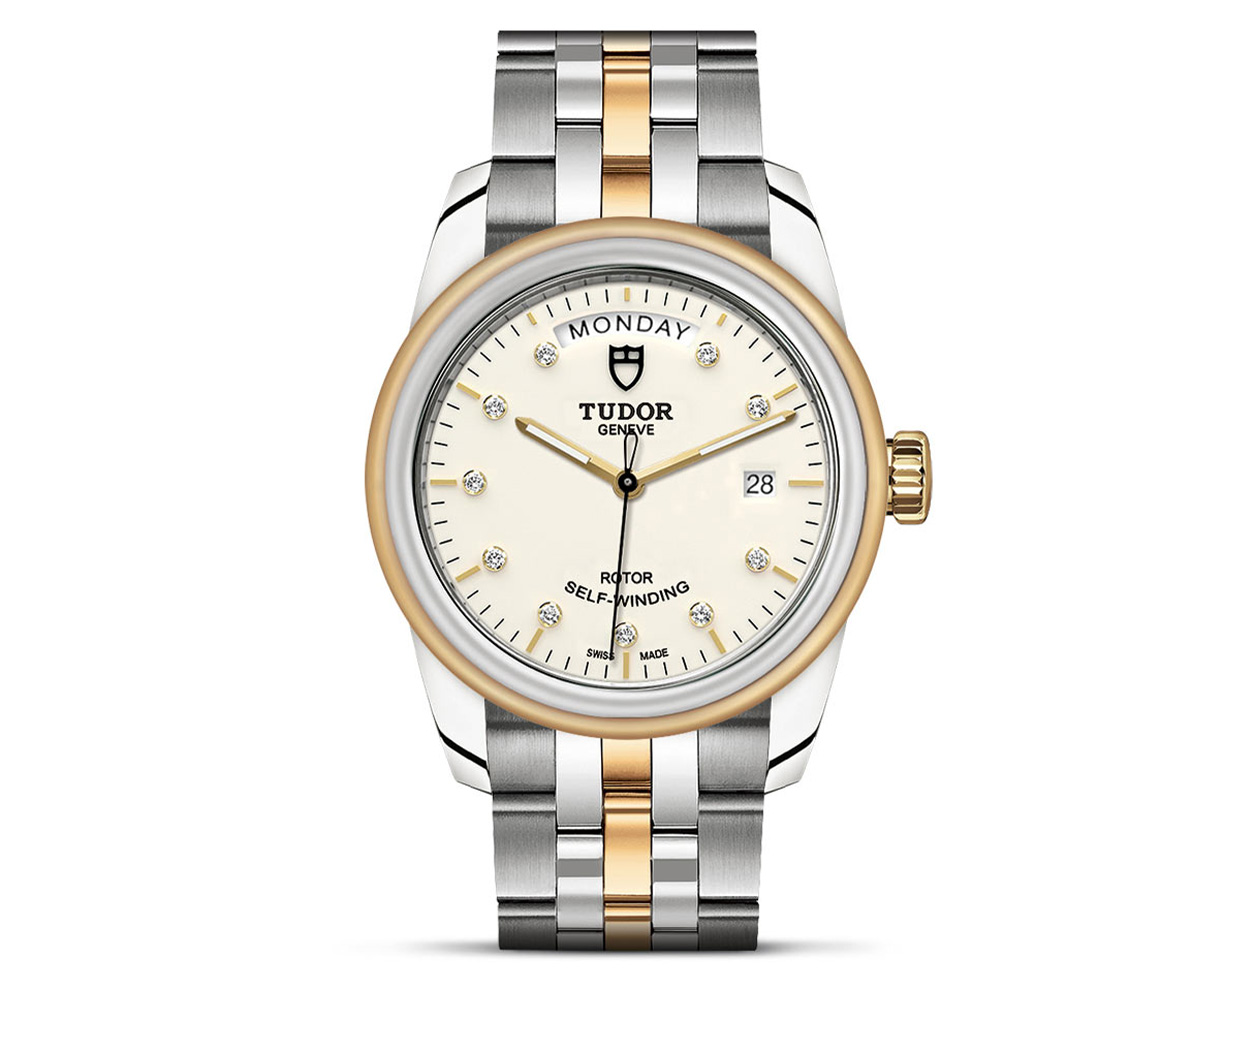 TUDOR Glamour Date Day M56003 0113 FINAL